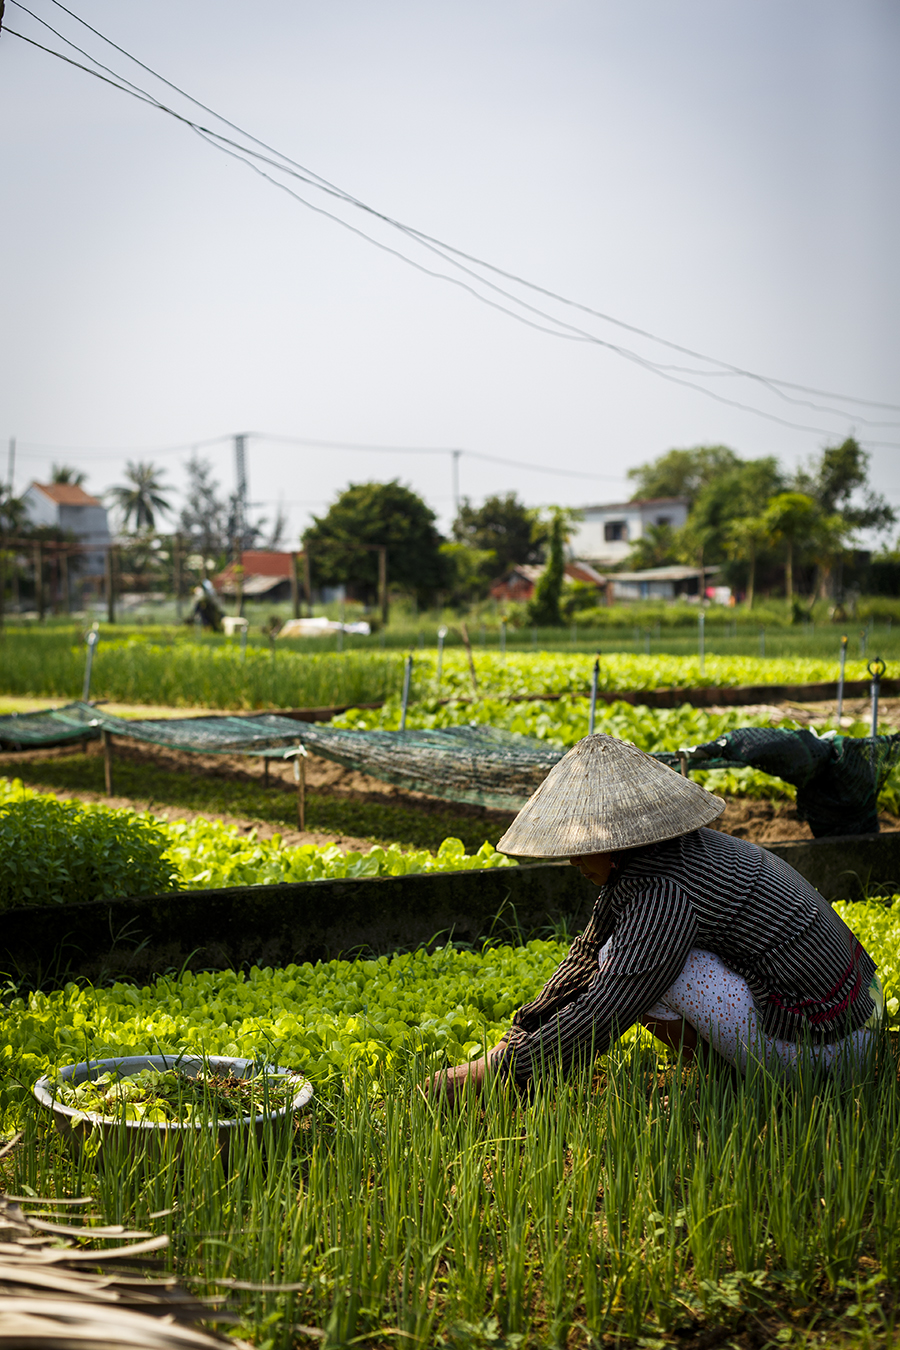 Vietnamese farmer at the Tra Que Village